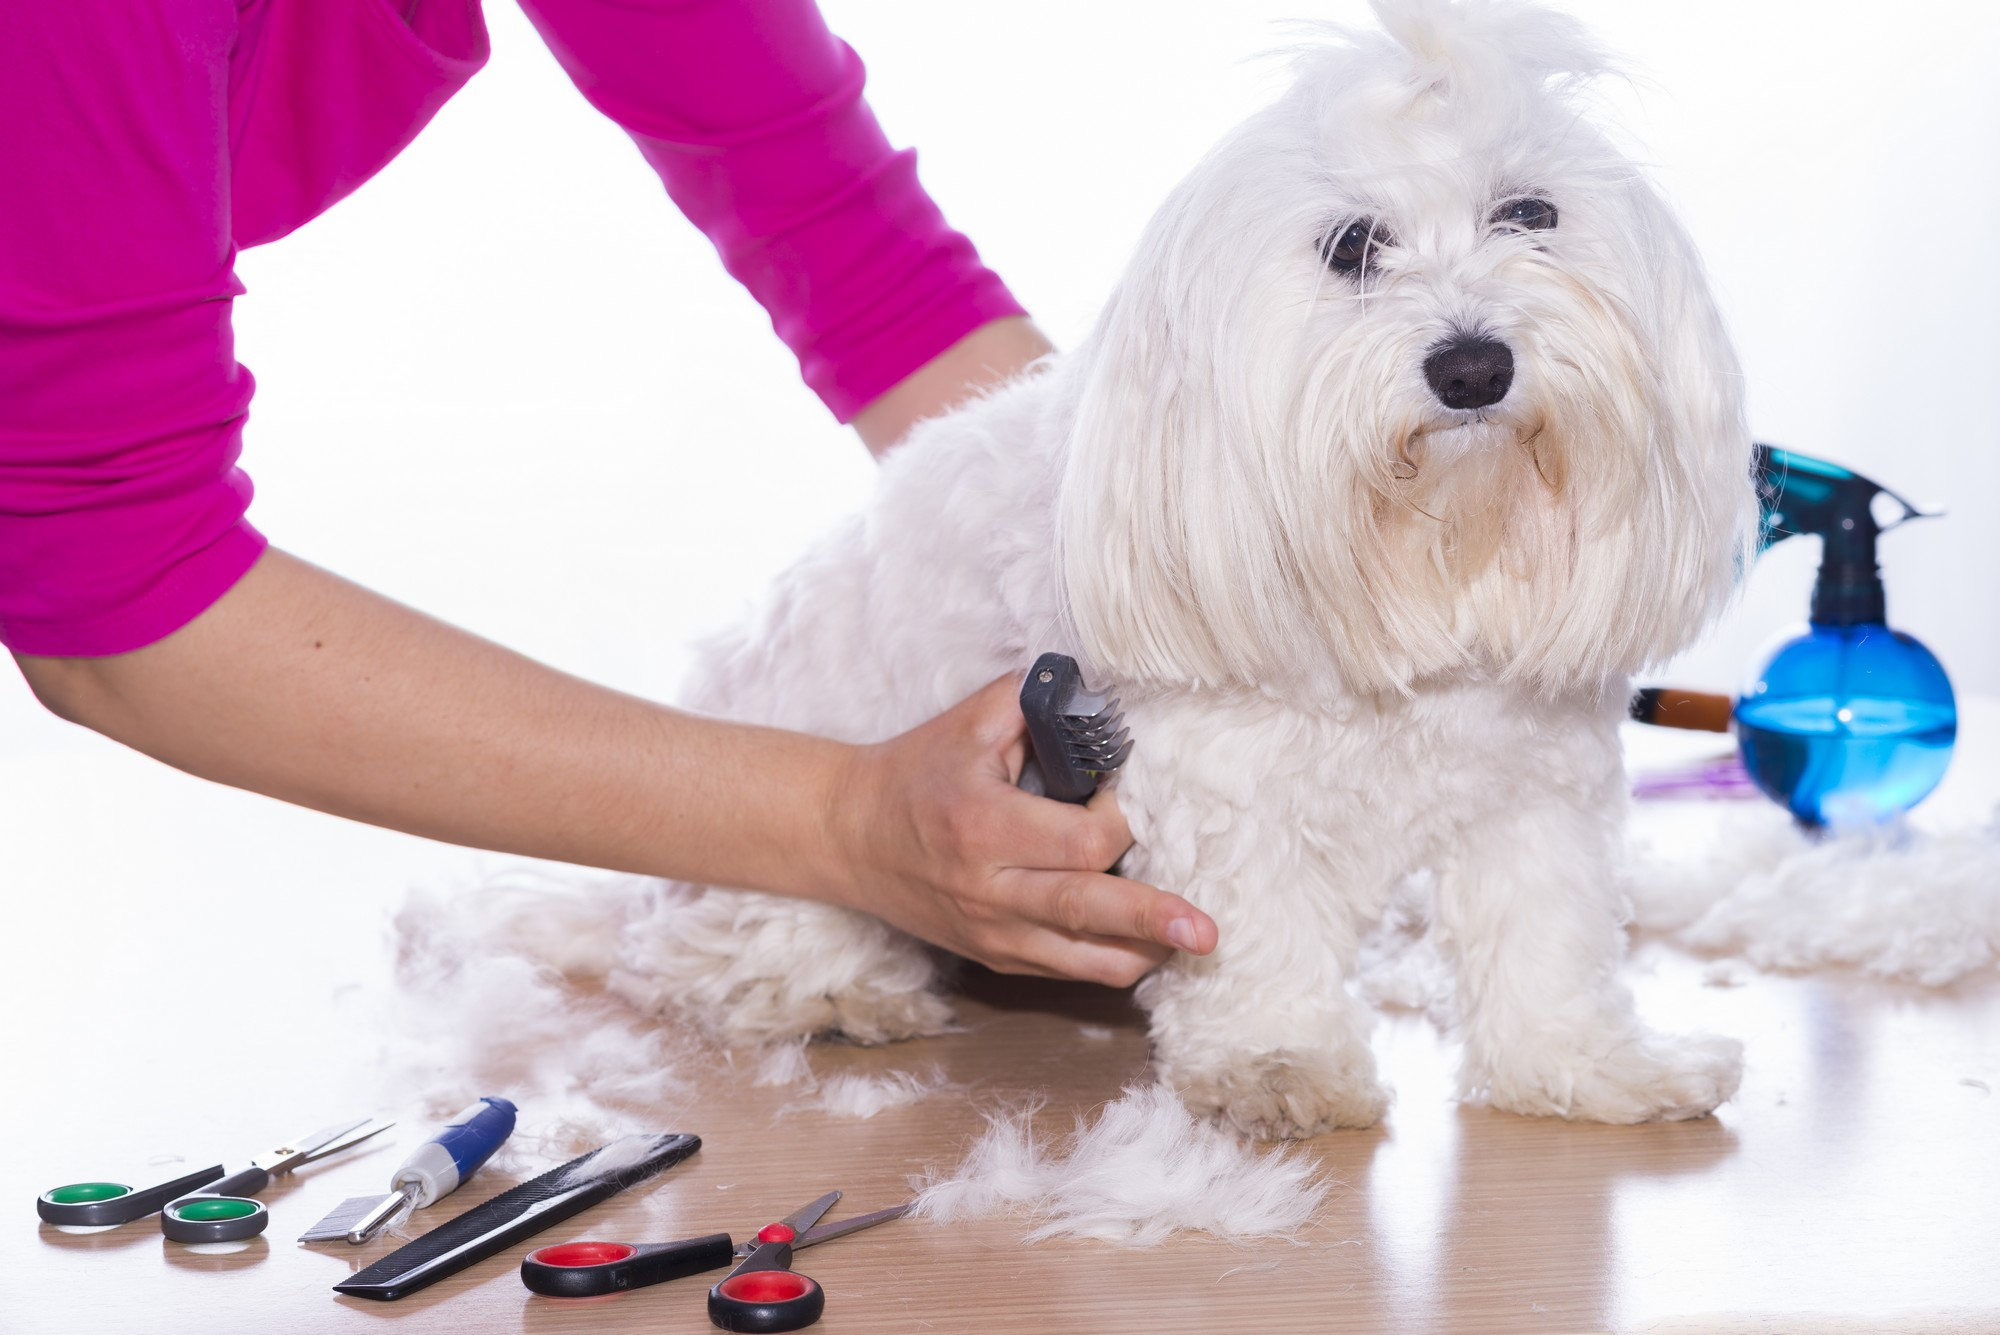 10 Common Dog Grooming Mistakes And How To Avoid Them ... |Dogs Grooming